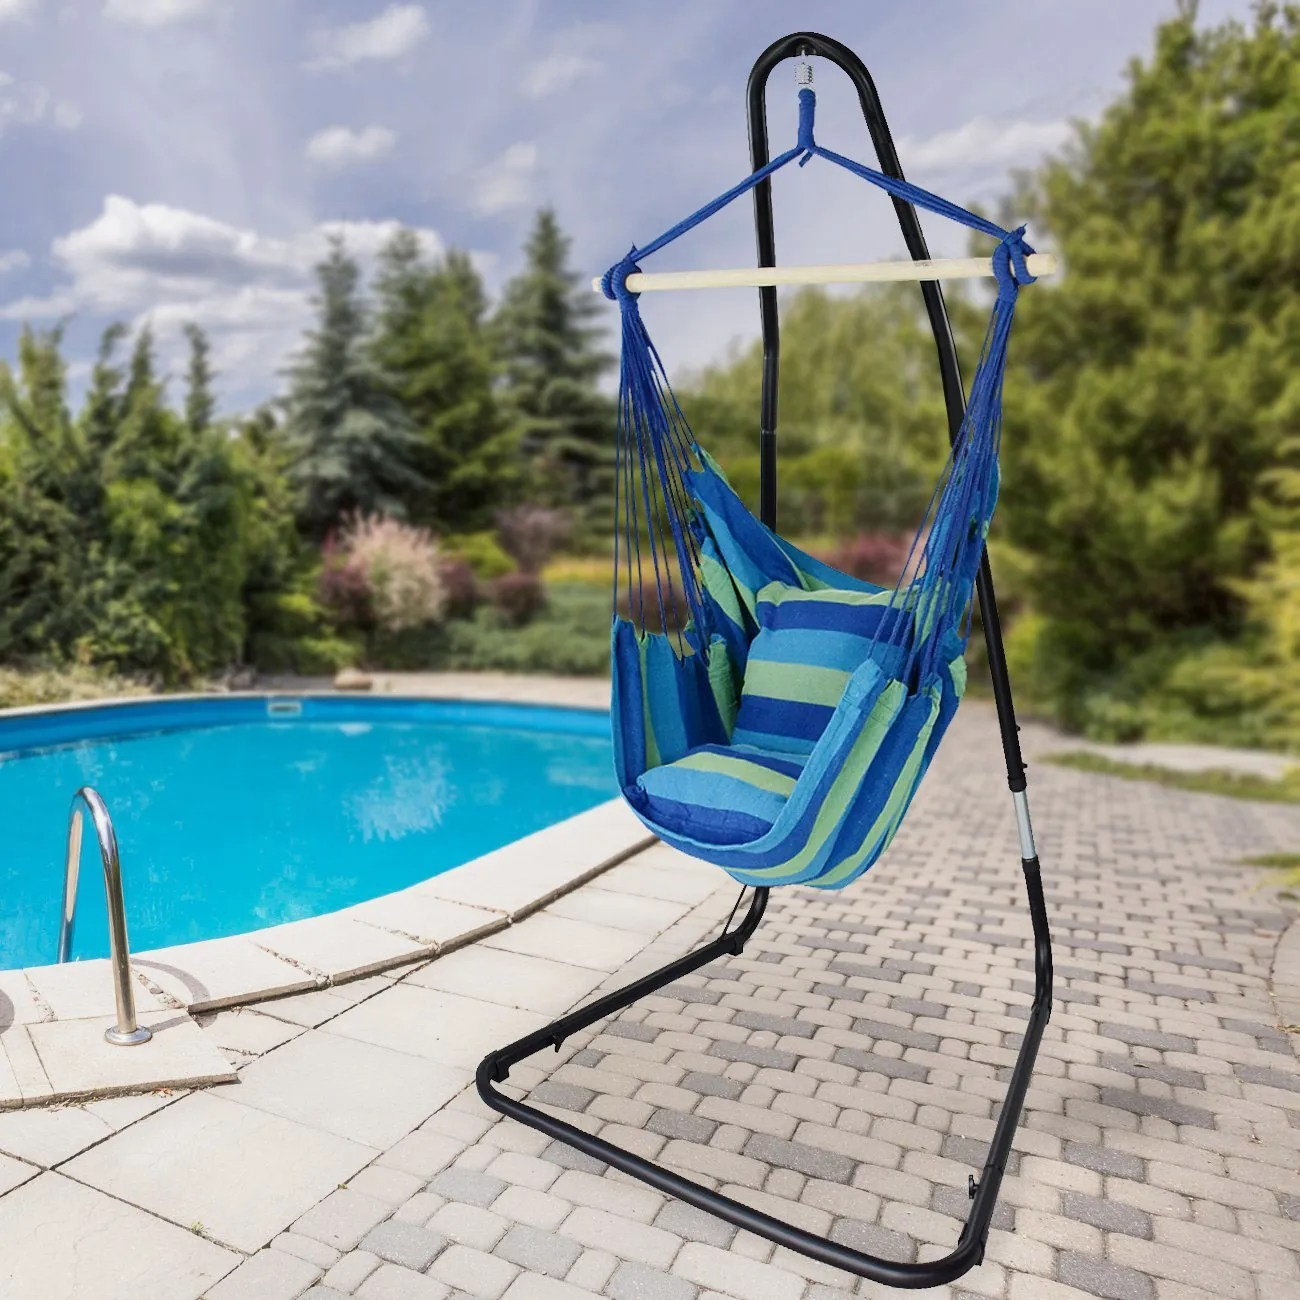 Hanging Outdoor Chairs Sorbus Hanging Rope Hammock Chair Swing Seat With Adjustable Multi Use Stand